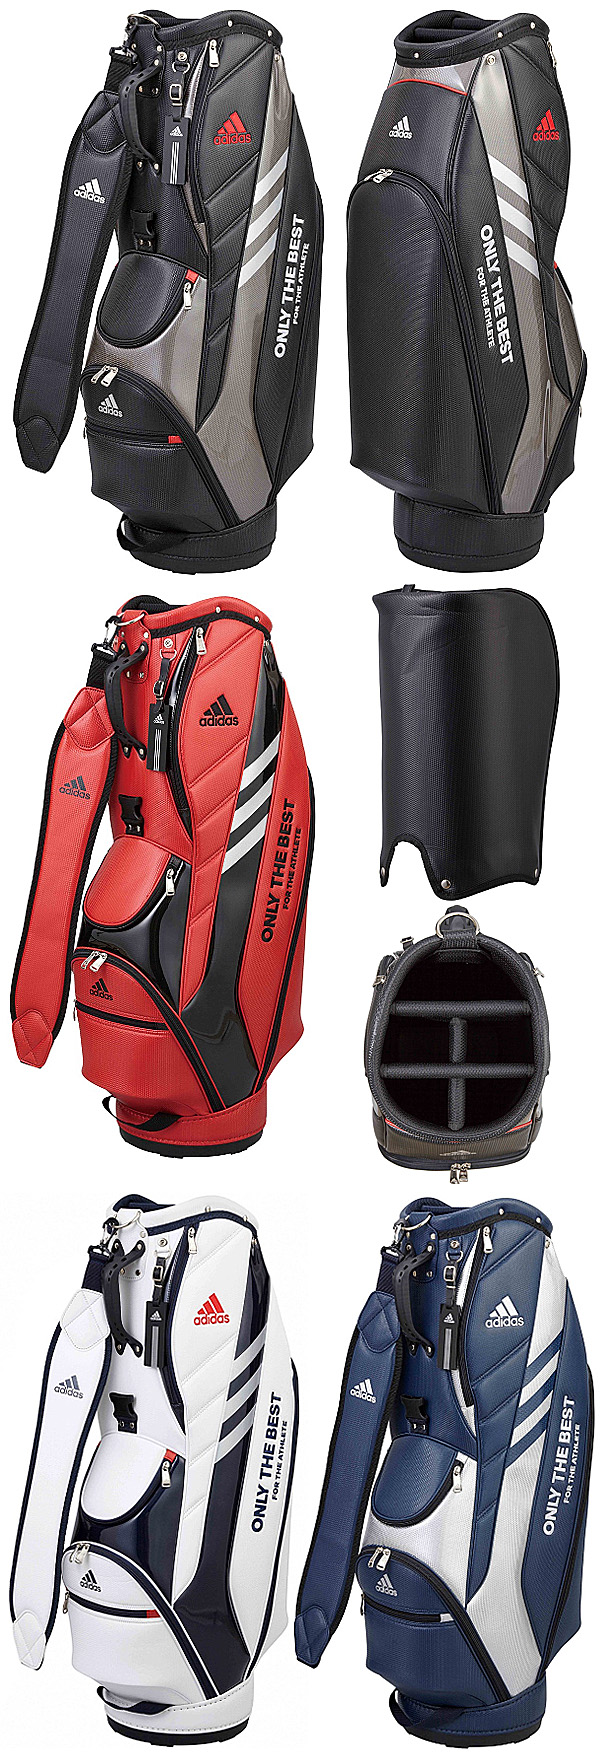 Sales! Adidas Golf Japan 2018 Spring Summer Slim Size Cad Cart ... on adidas tour golf bags, golf staff bags, adidas approach golf bags, adidas golf stand bags, adidas bags for boys, adidas golf bags clearance, adidas approach cart bag review, adidas samba black golf bags, adidas accessories,